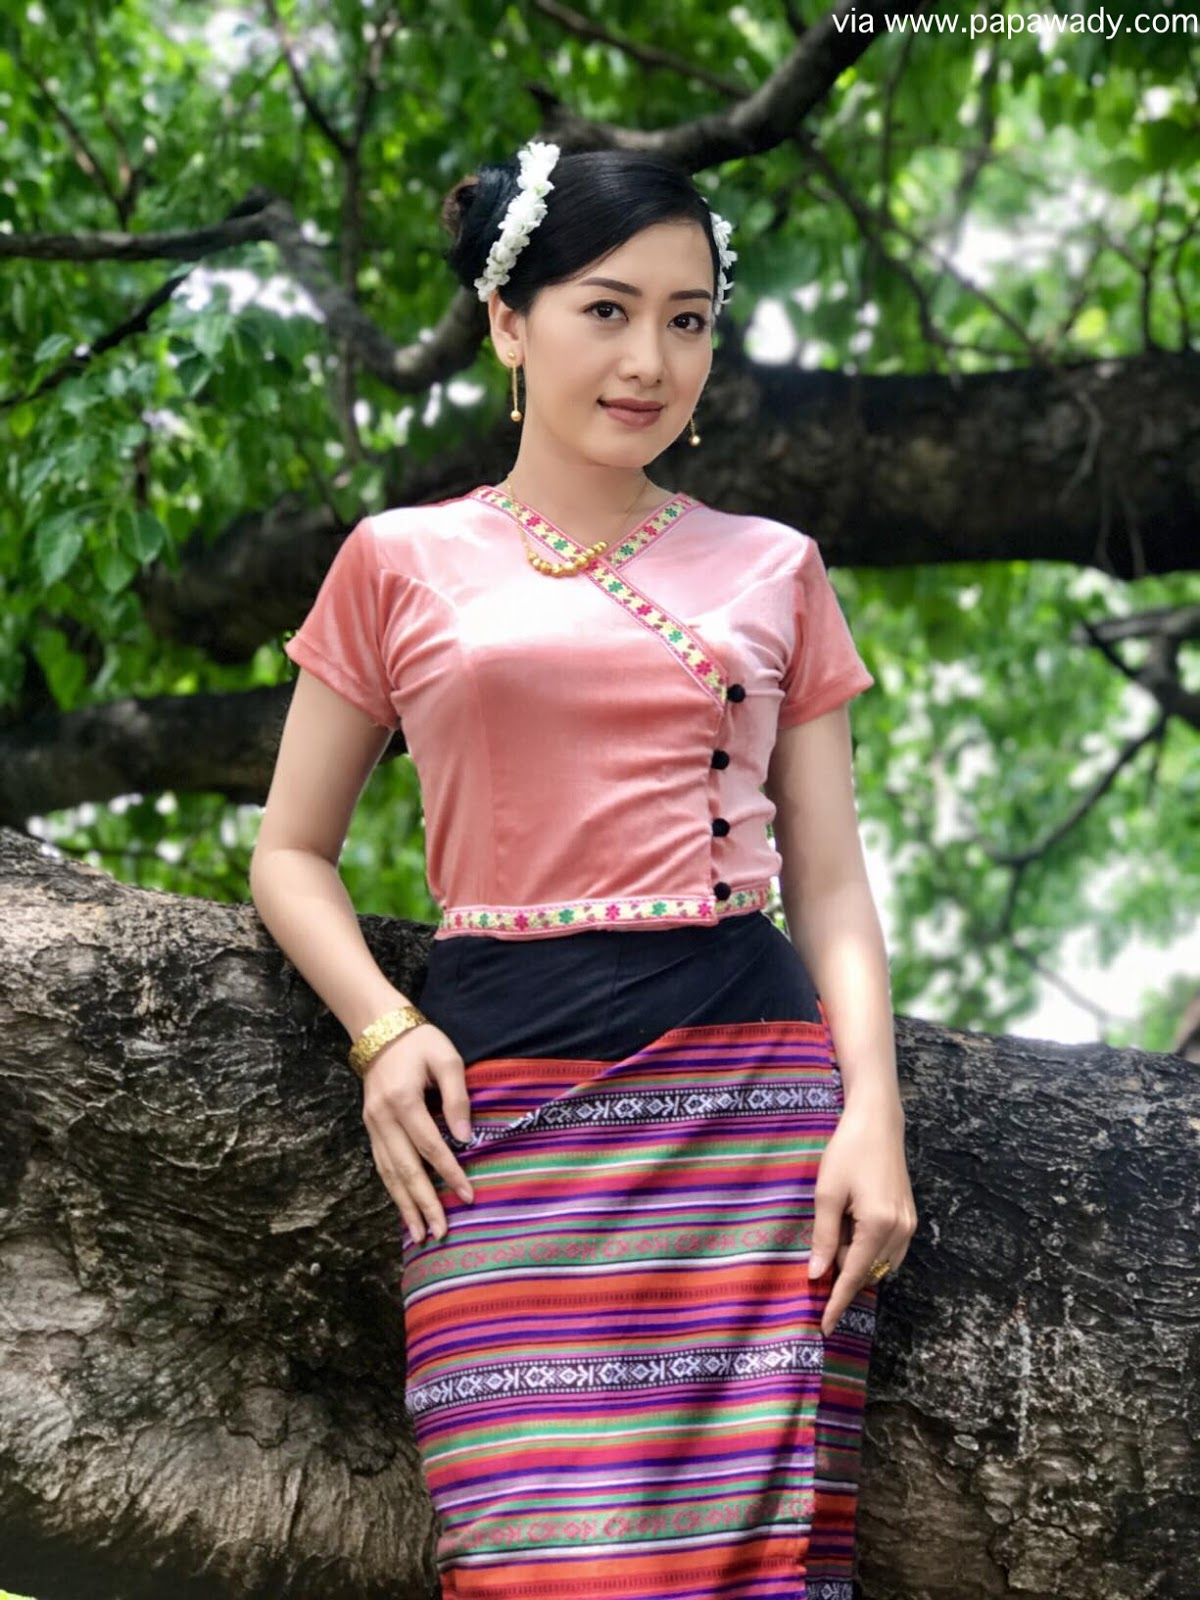 Myanmar Sxe Girl Photo